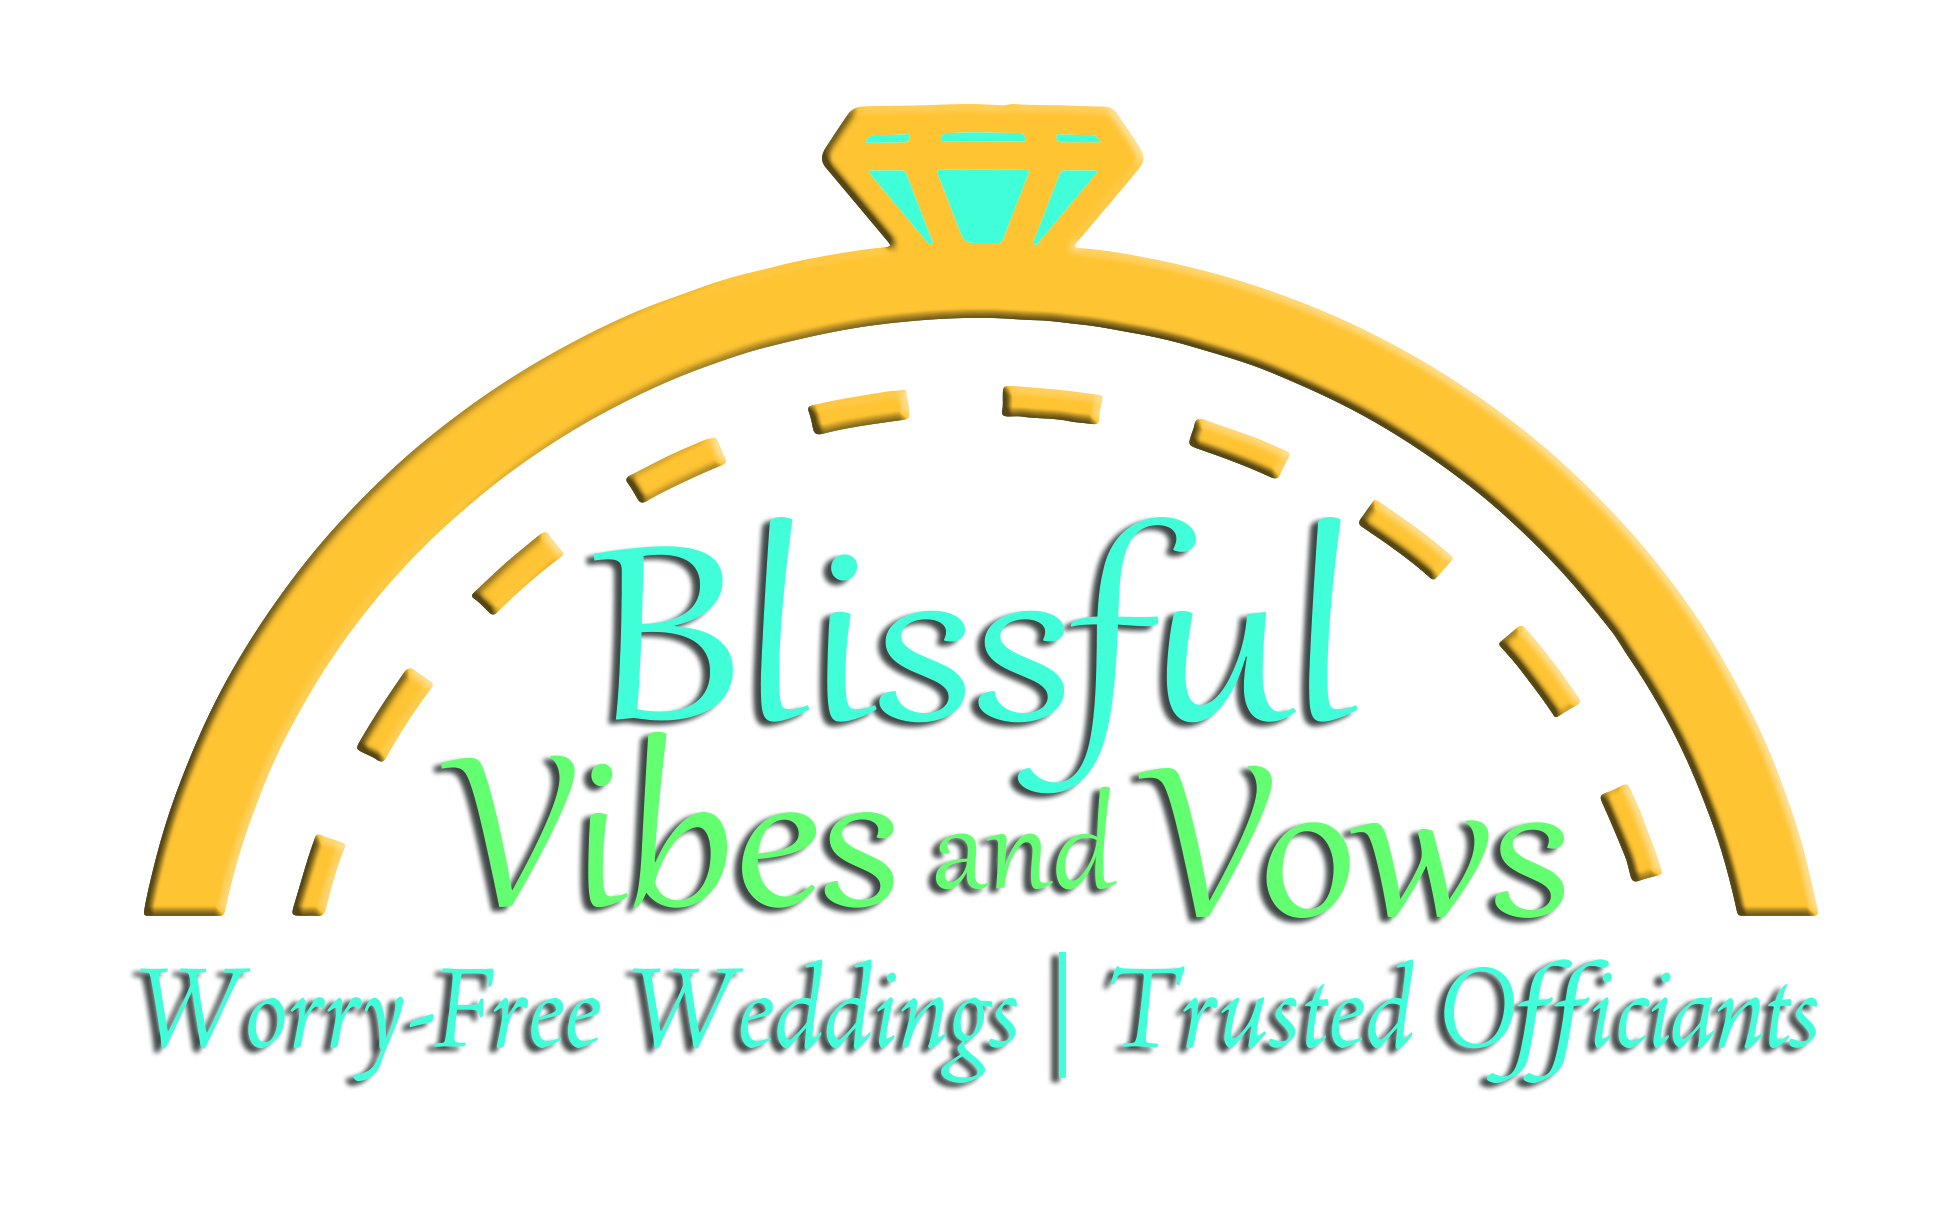 BLISSFUL VIBES and VOWS effects